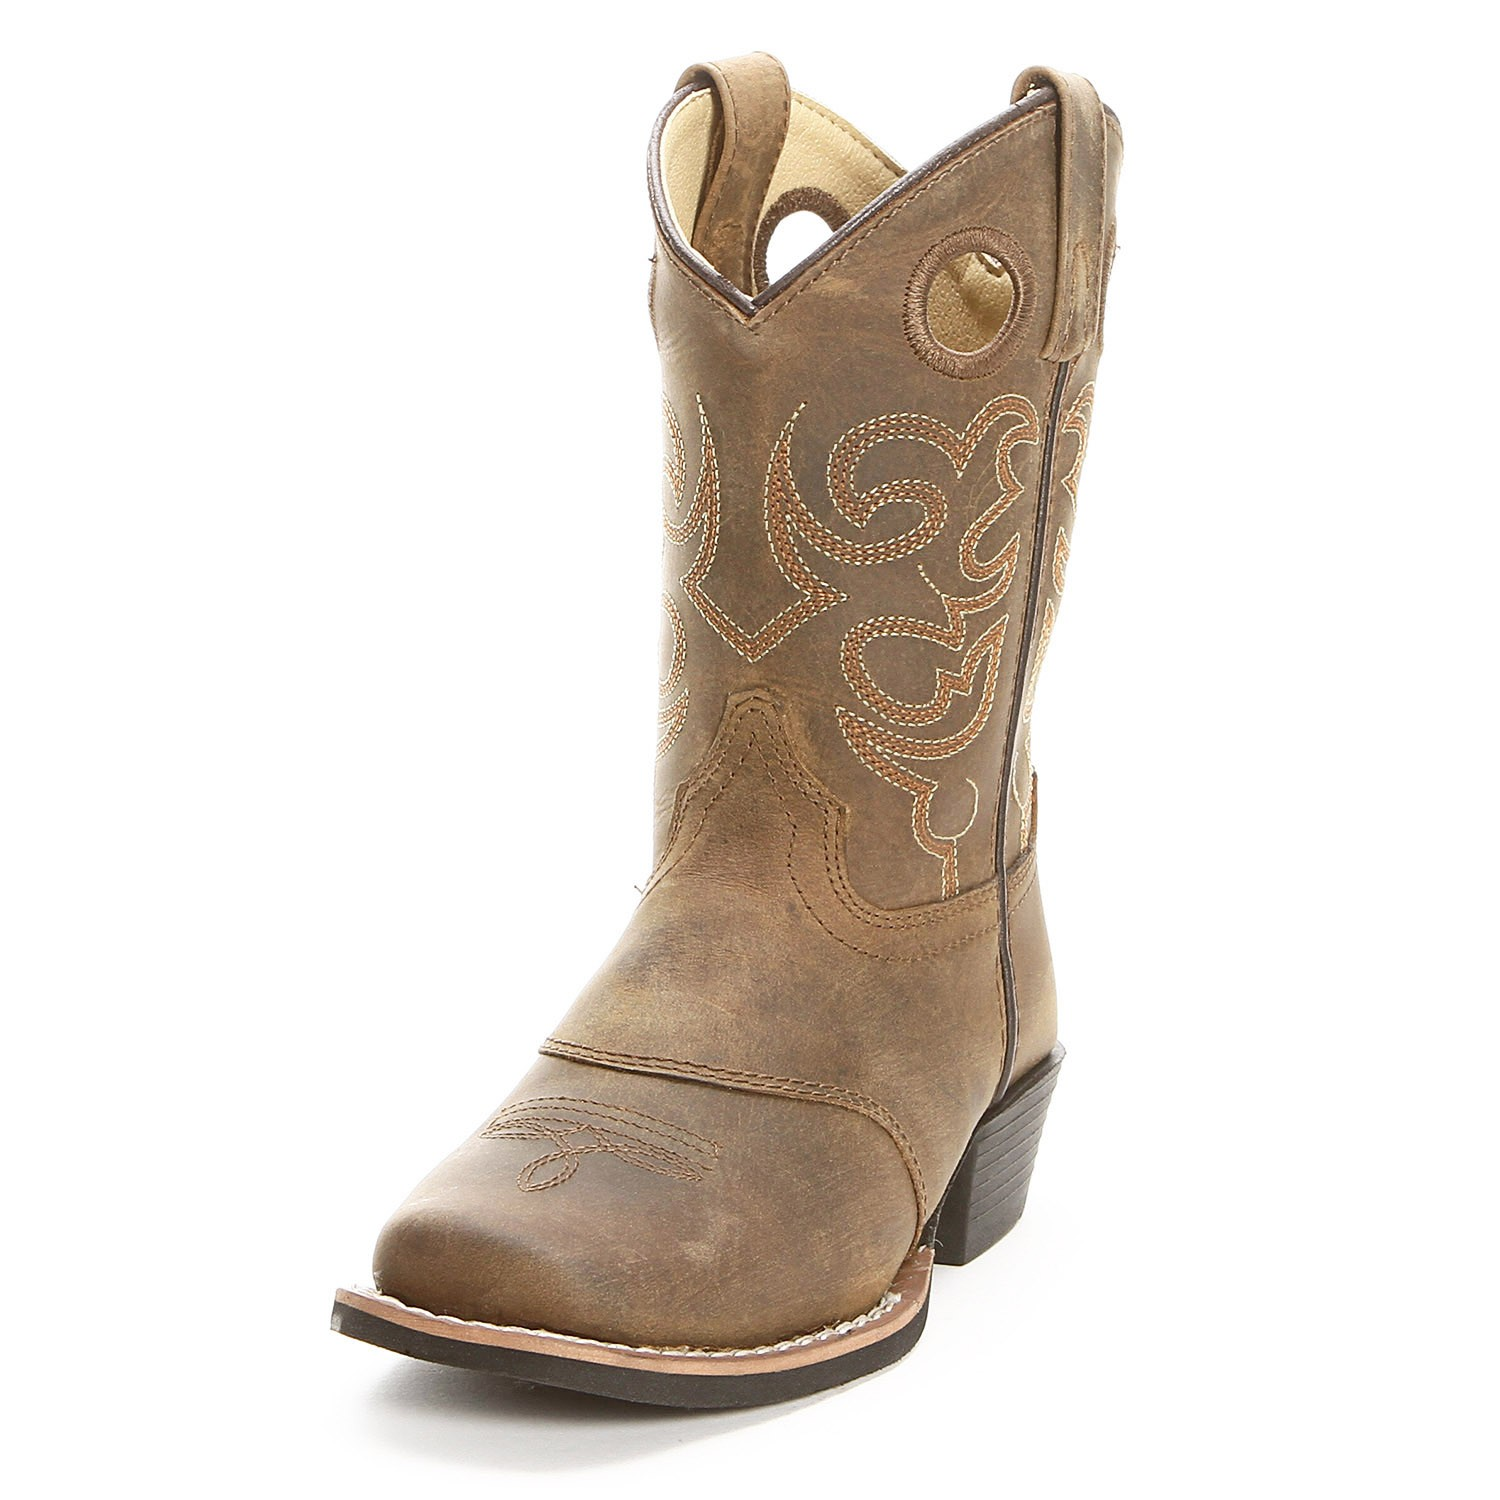 Cheap Cowgirl Boots For Kids rlnhr051